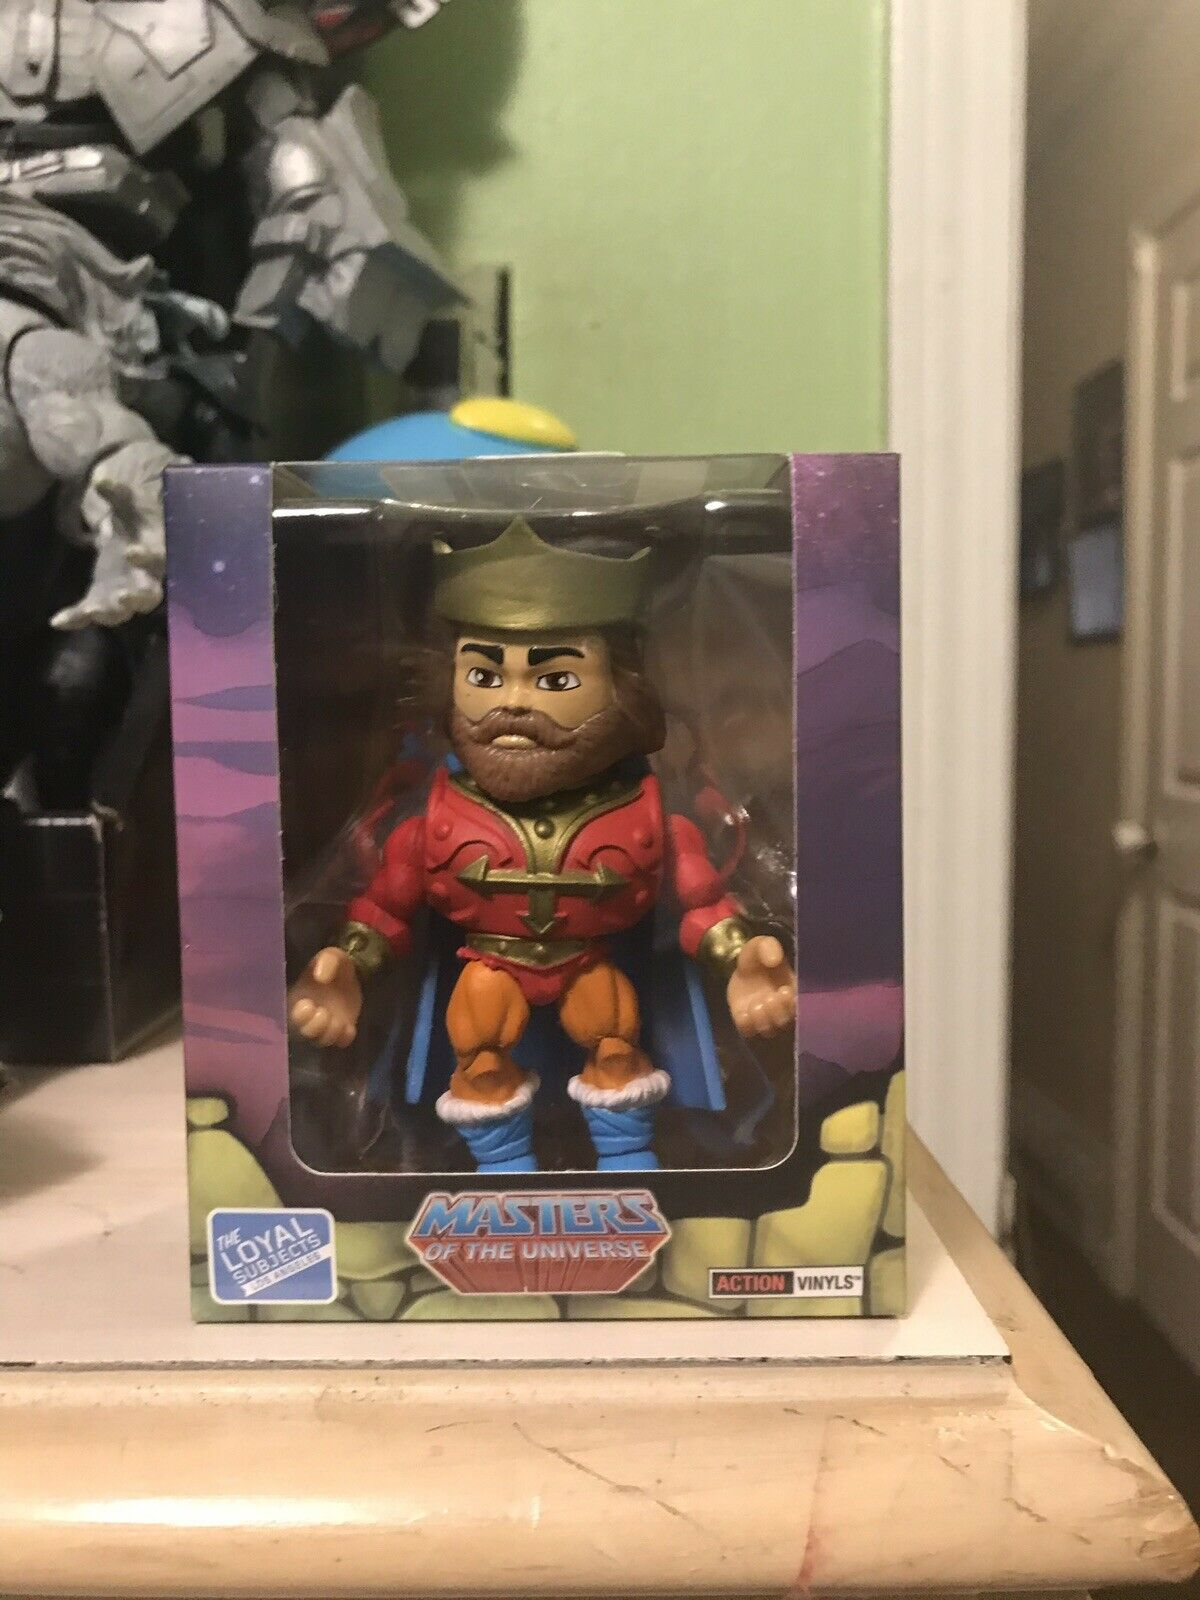 The loyal subjects masters of the universe King Randor 1 96